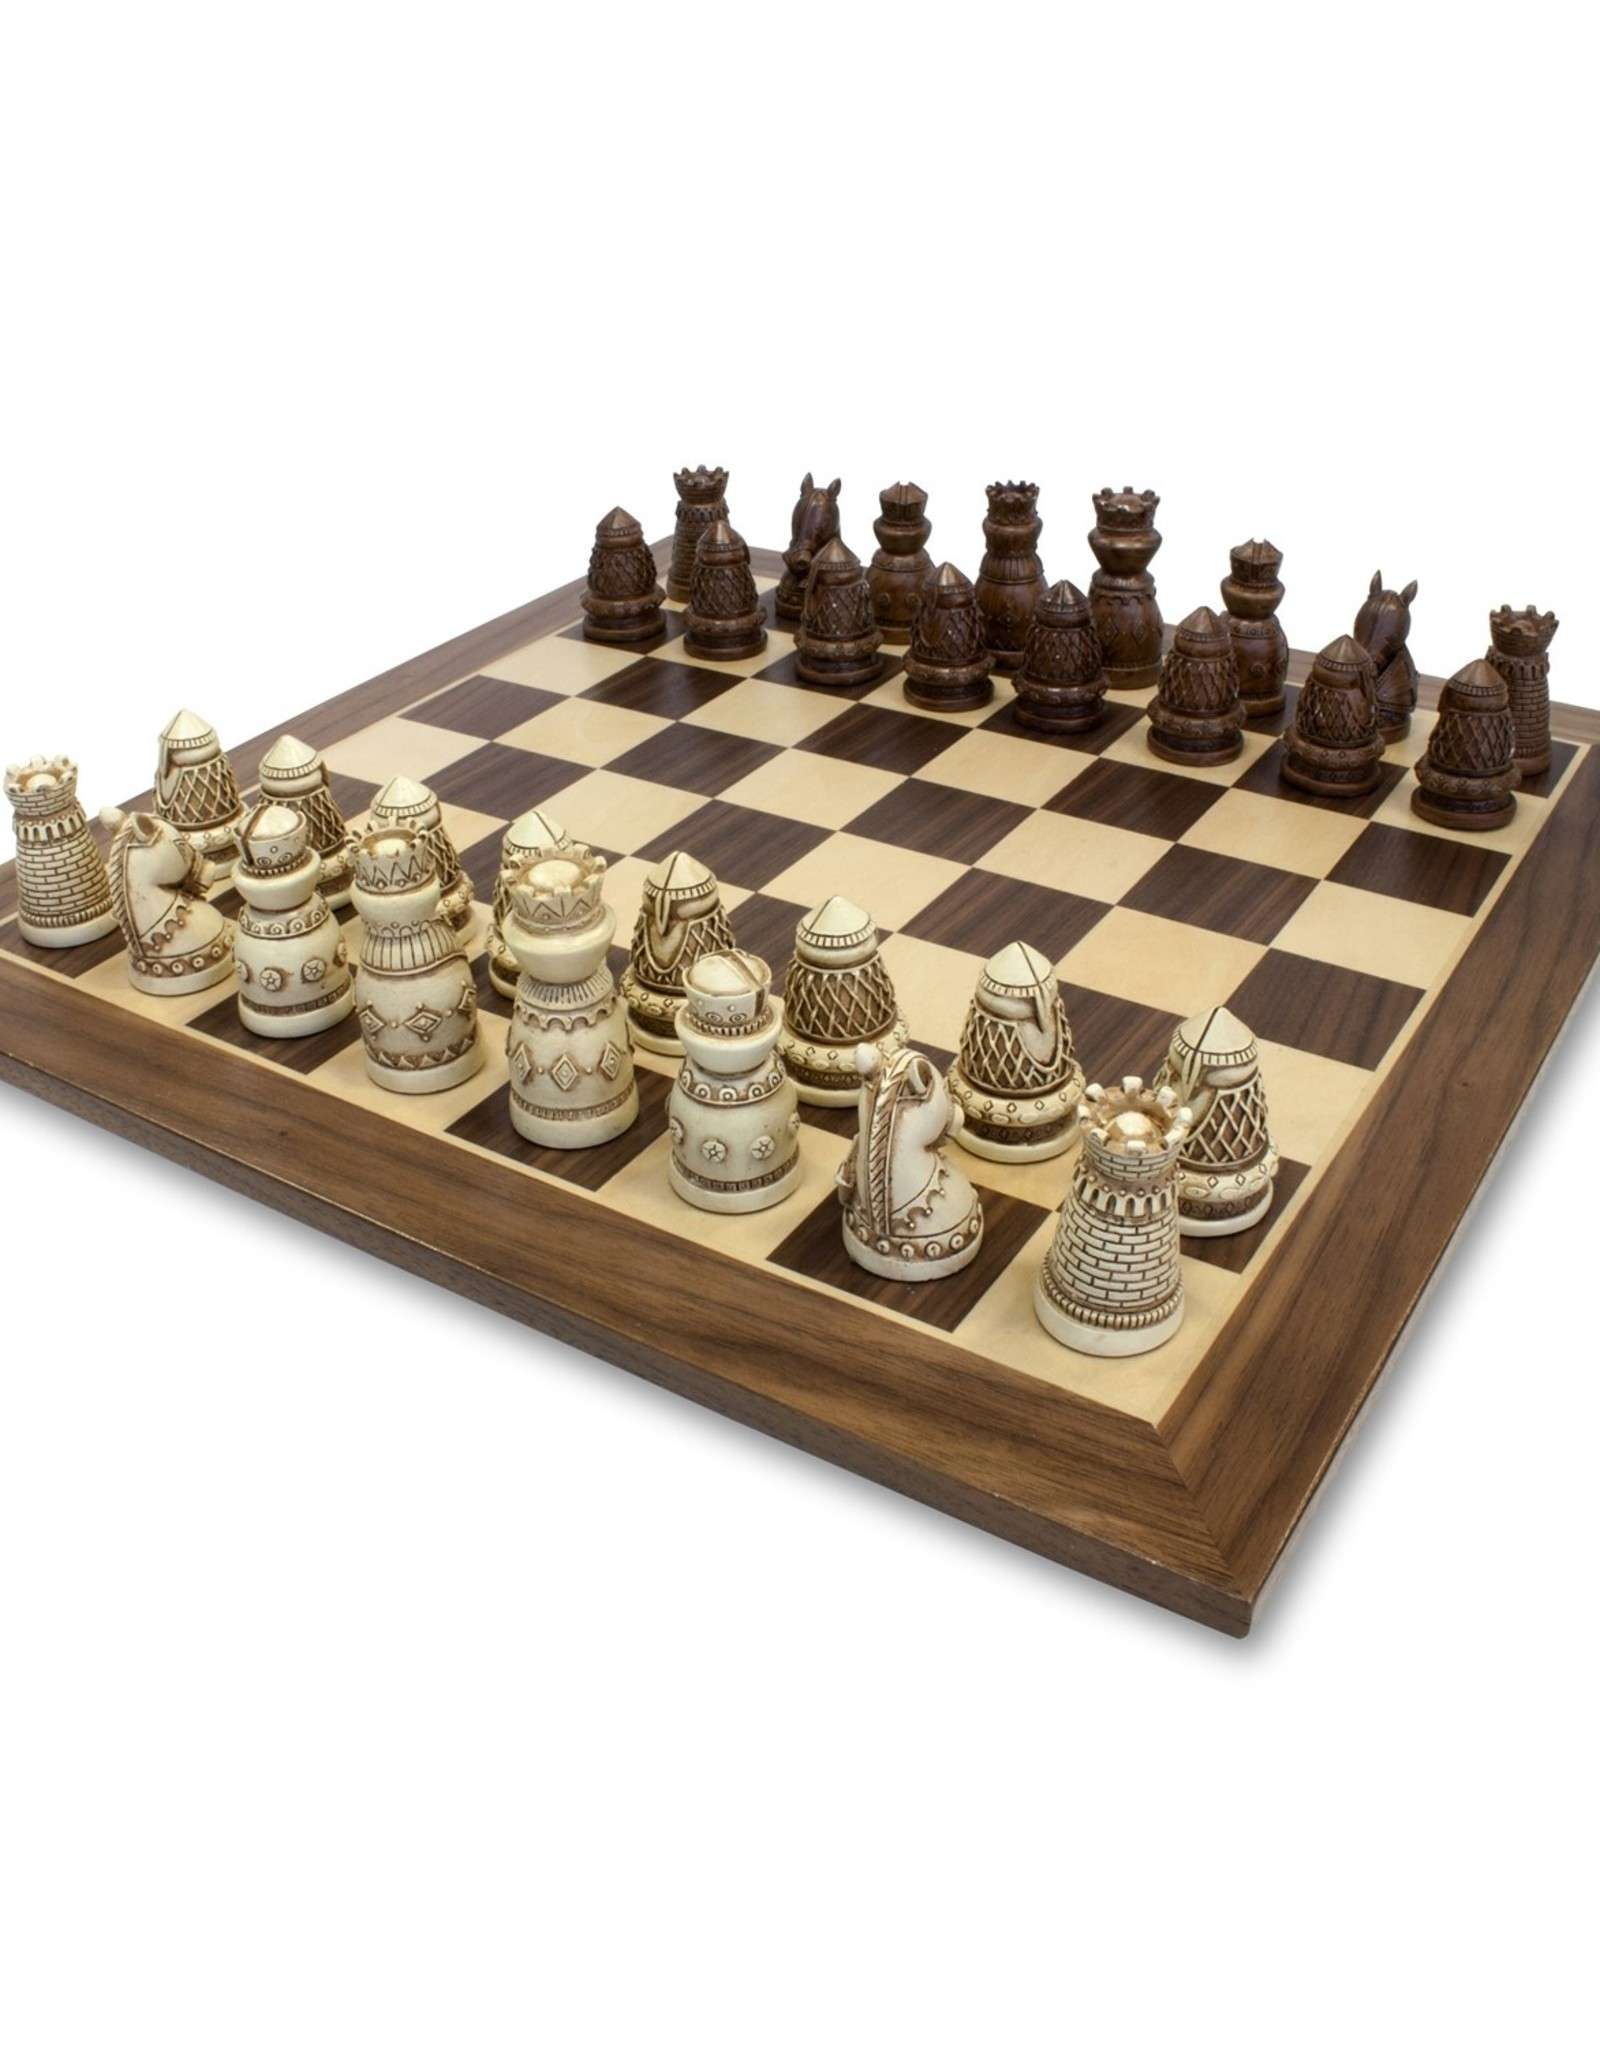 Wood Expressions Premium Medeival Chess Set